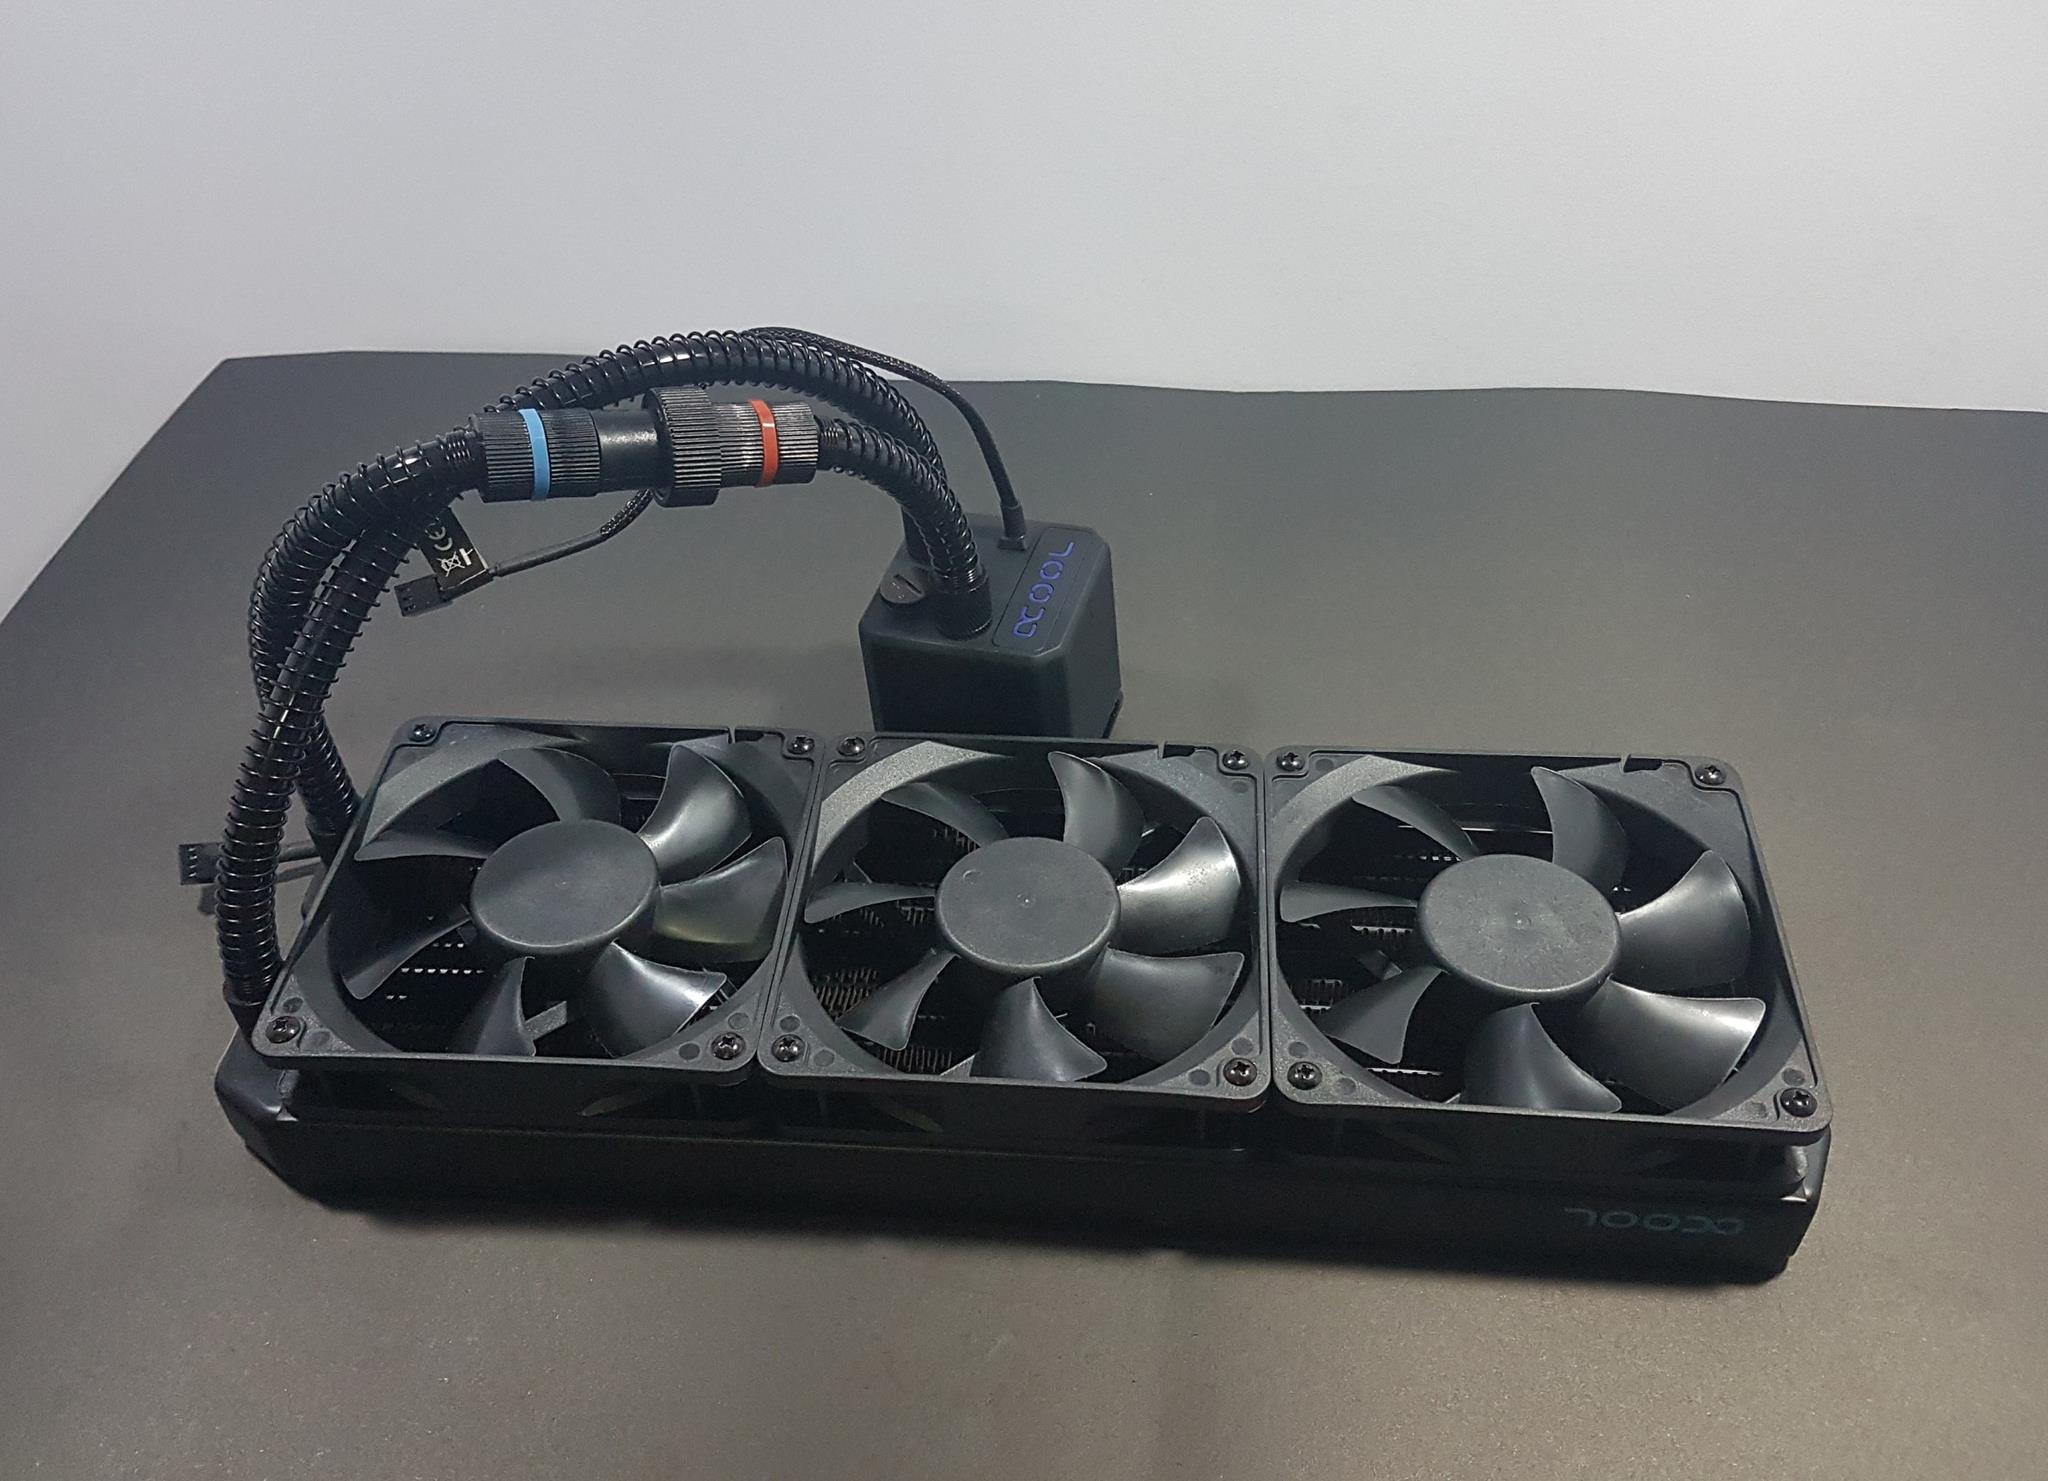 Alphacool Eisbaer 360mm Modular Aio Cpu Cooler Black Pin To 3pin Power Connector For Or System Fan Oem Pack Start Threading Them Diagonally Connect The Cables On Headers Of Motherboard This Would Complete Installation Lga 1151